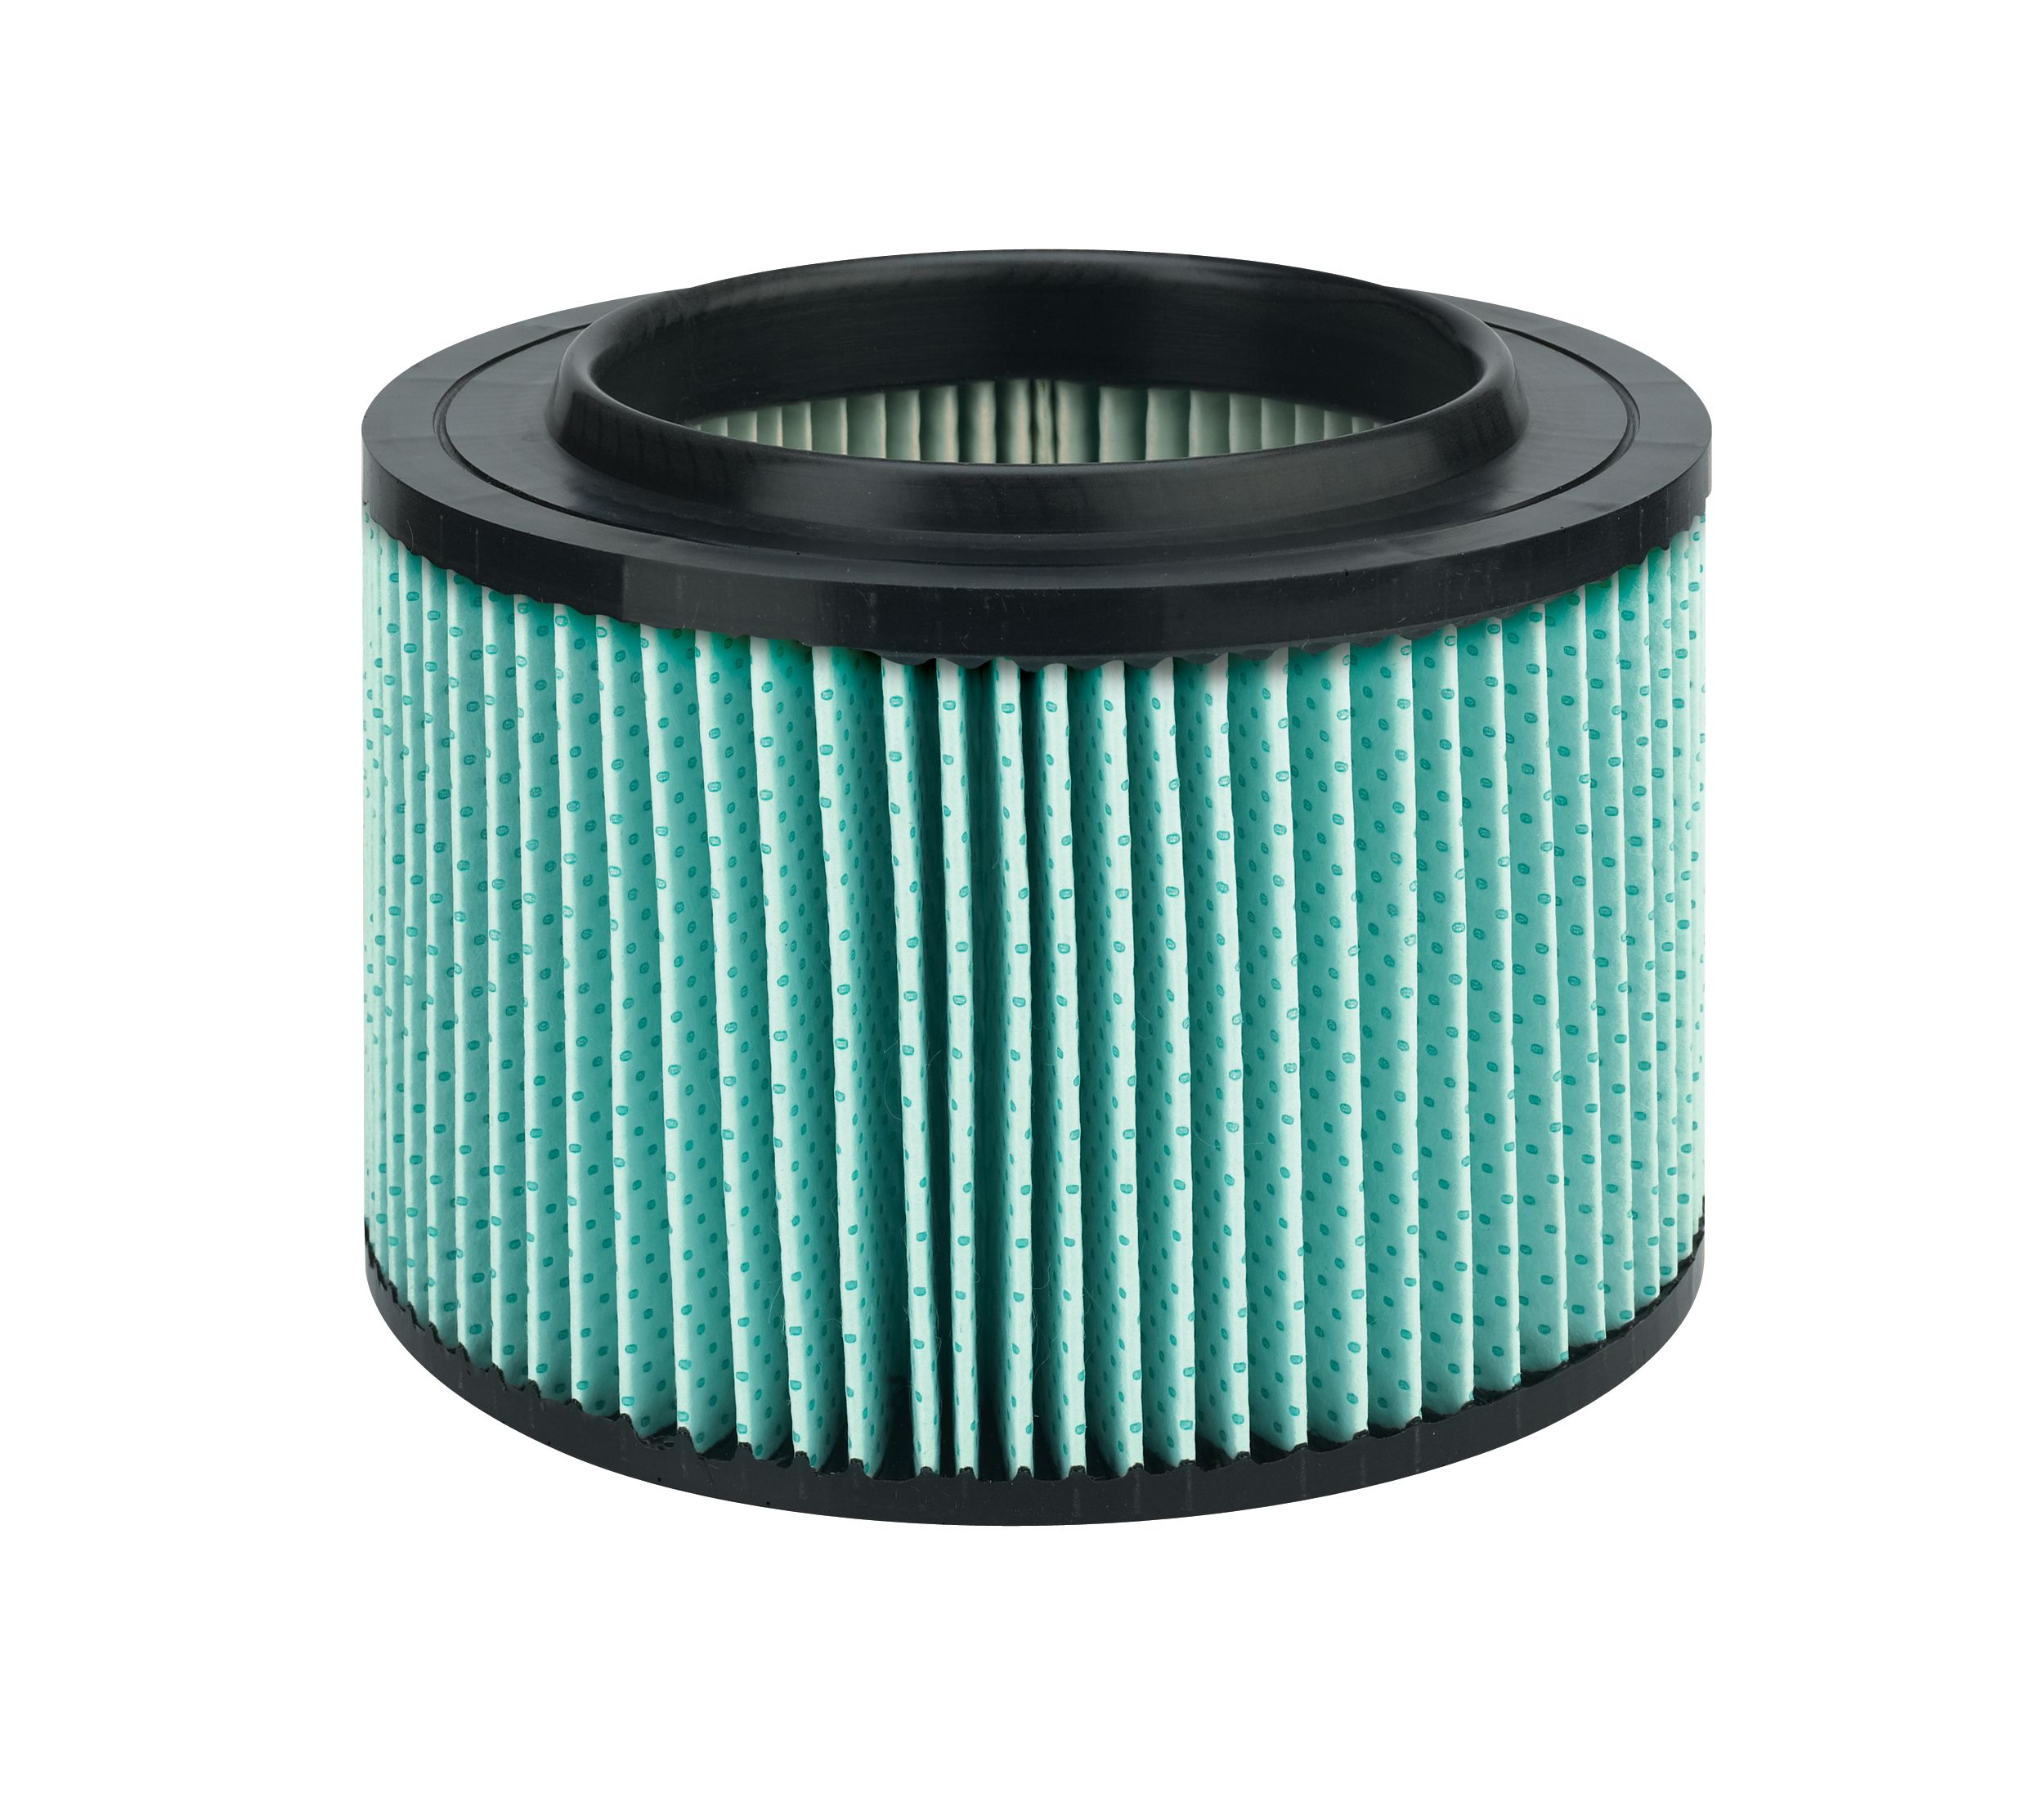 Craftsman HEPA Rated Material Vac Filter for  3 & 4 Gallon PartNumber: 00916950000P KsnValue: 00916950000 MfgPartNumber: 16950